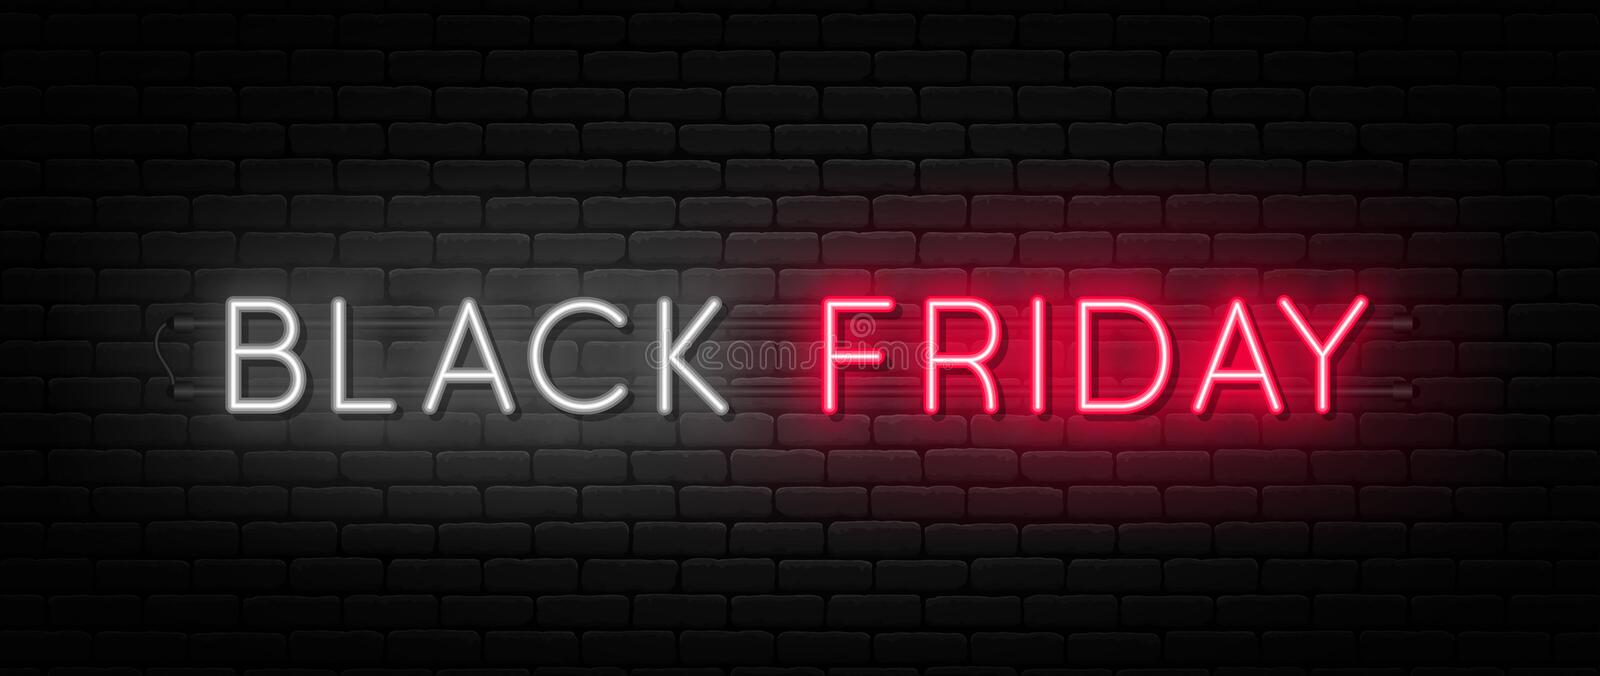 Black Friday sale. Black Friday neon sign on brick wall background. Glowing white and red neon text for advertising vector illustration